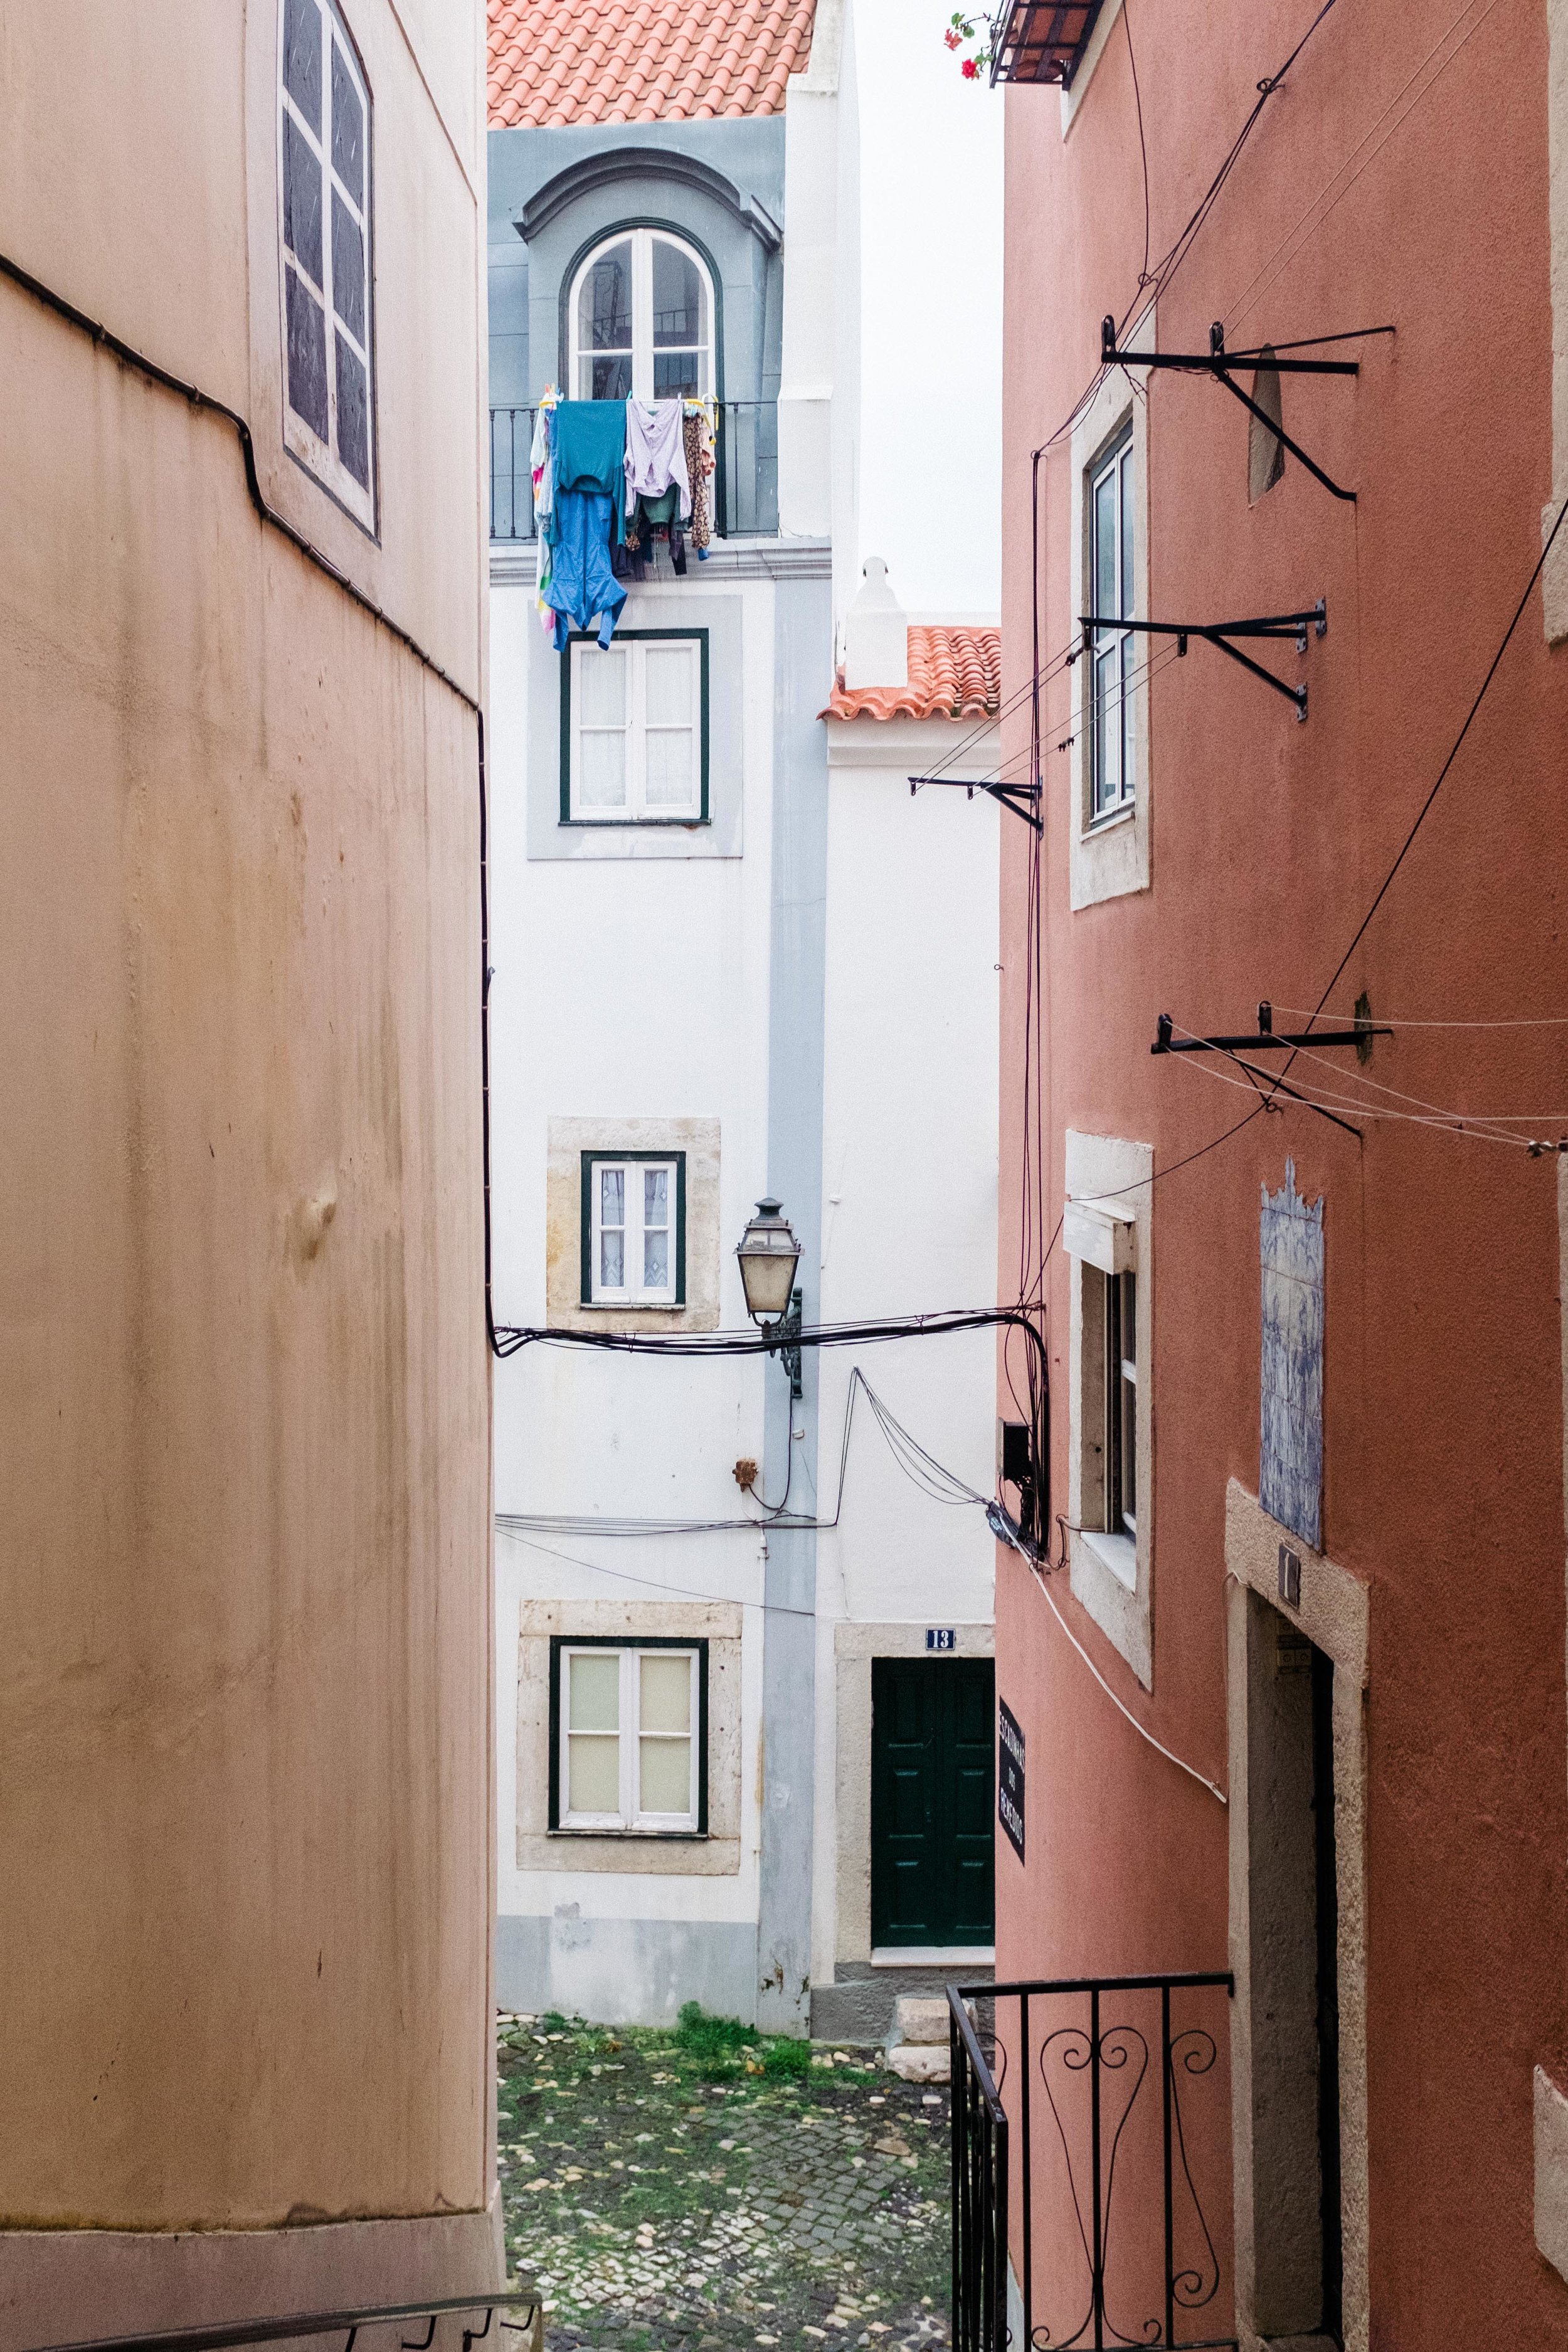 lisbon-portugal-alleyway-laundry-hanging